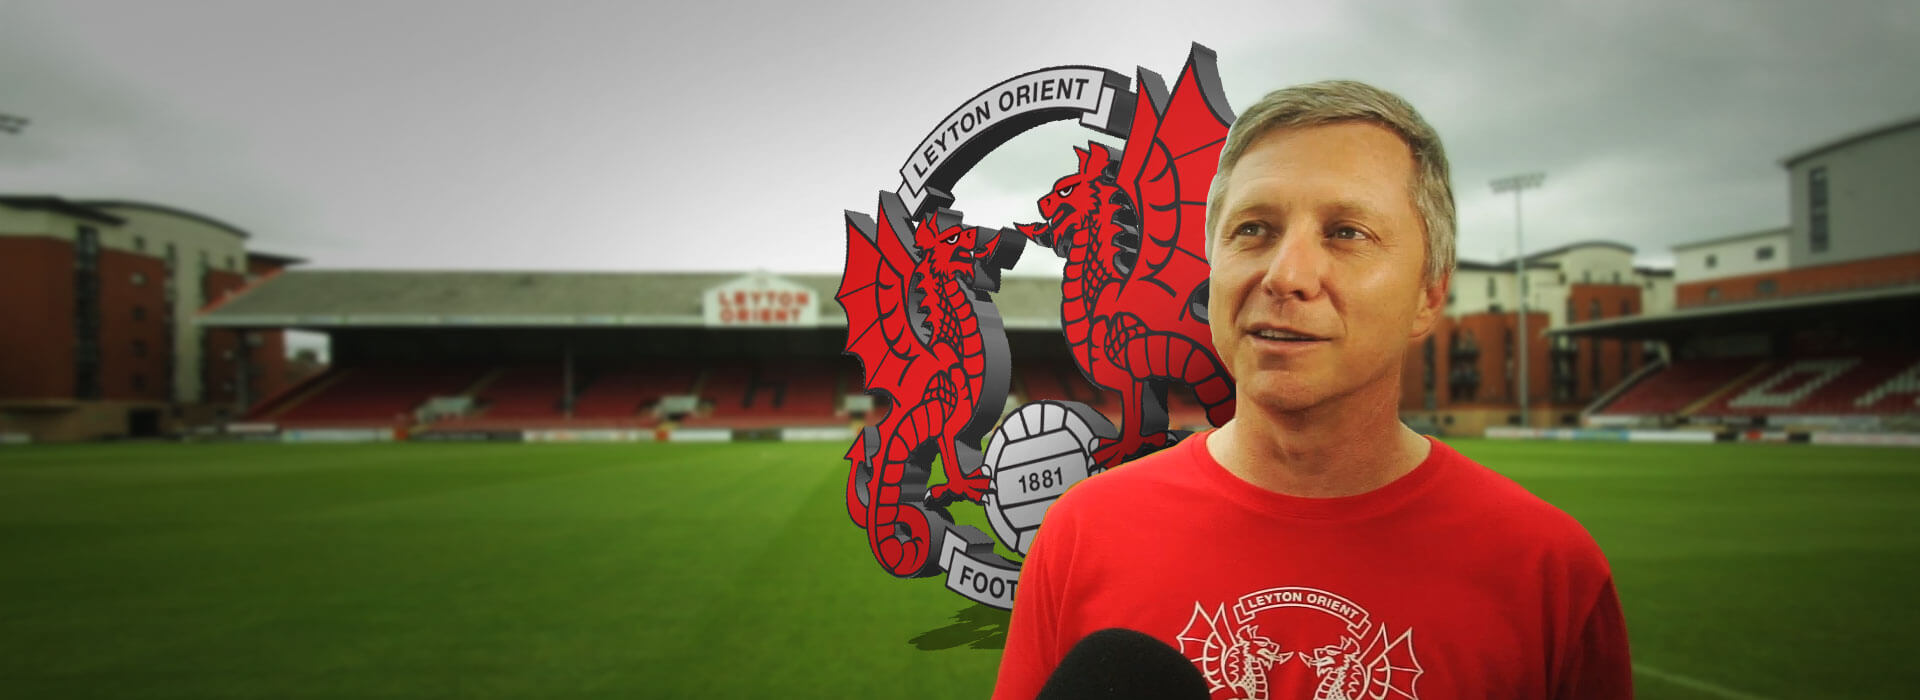 Teague Talks About the Orient's Future [video]